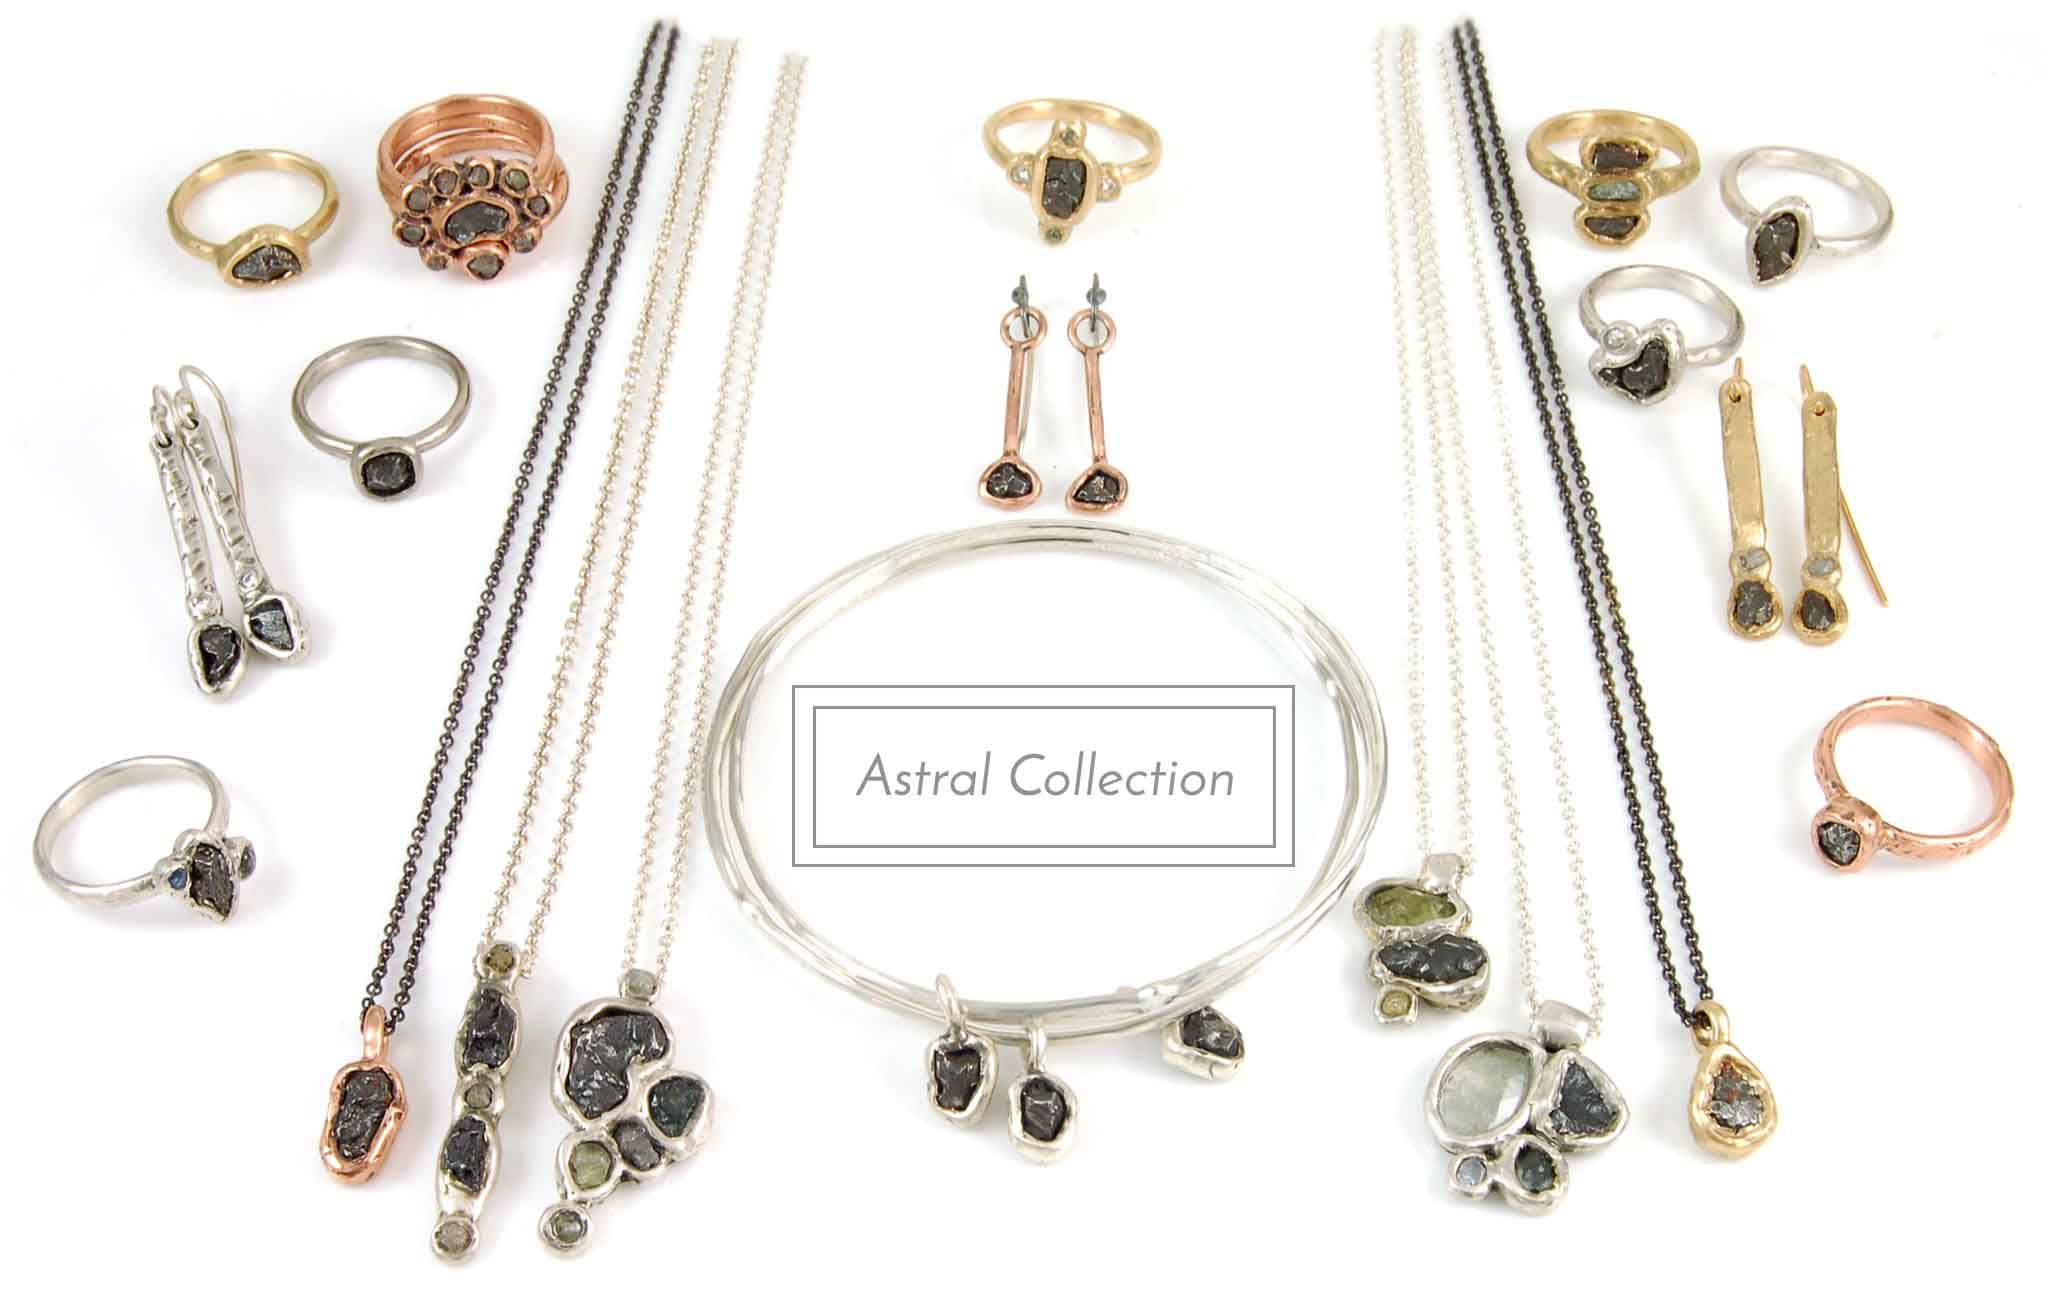 Astral Collection